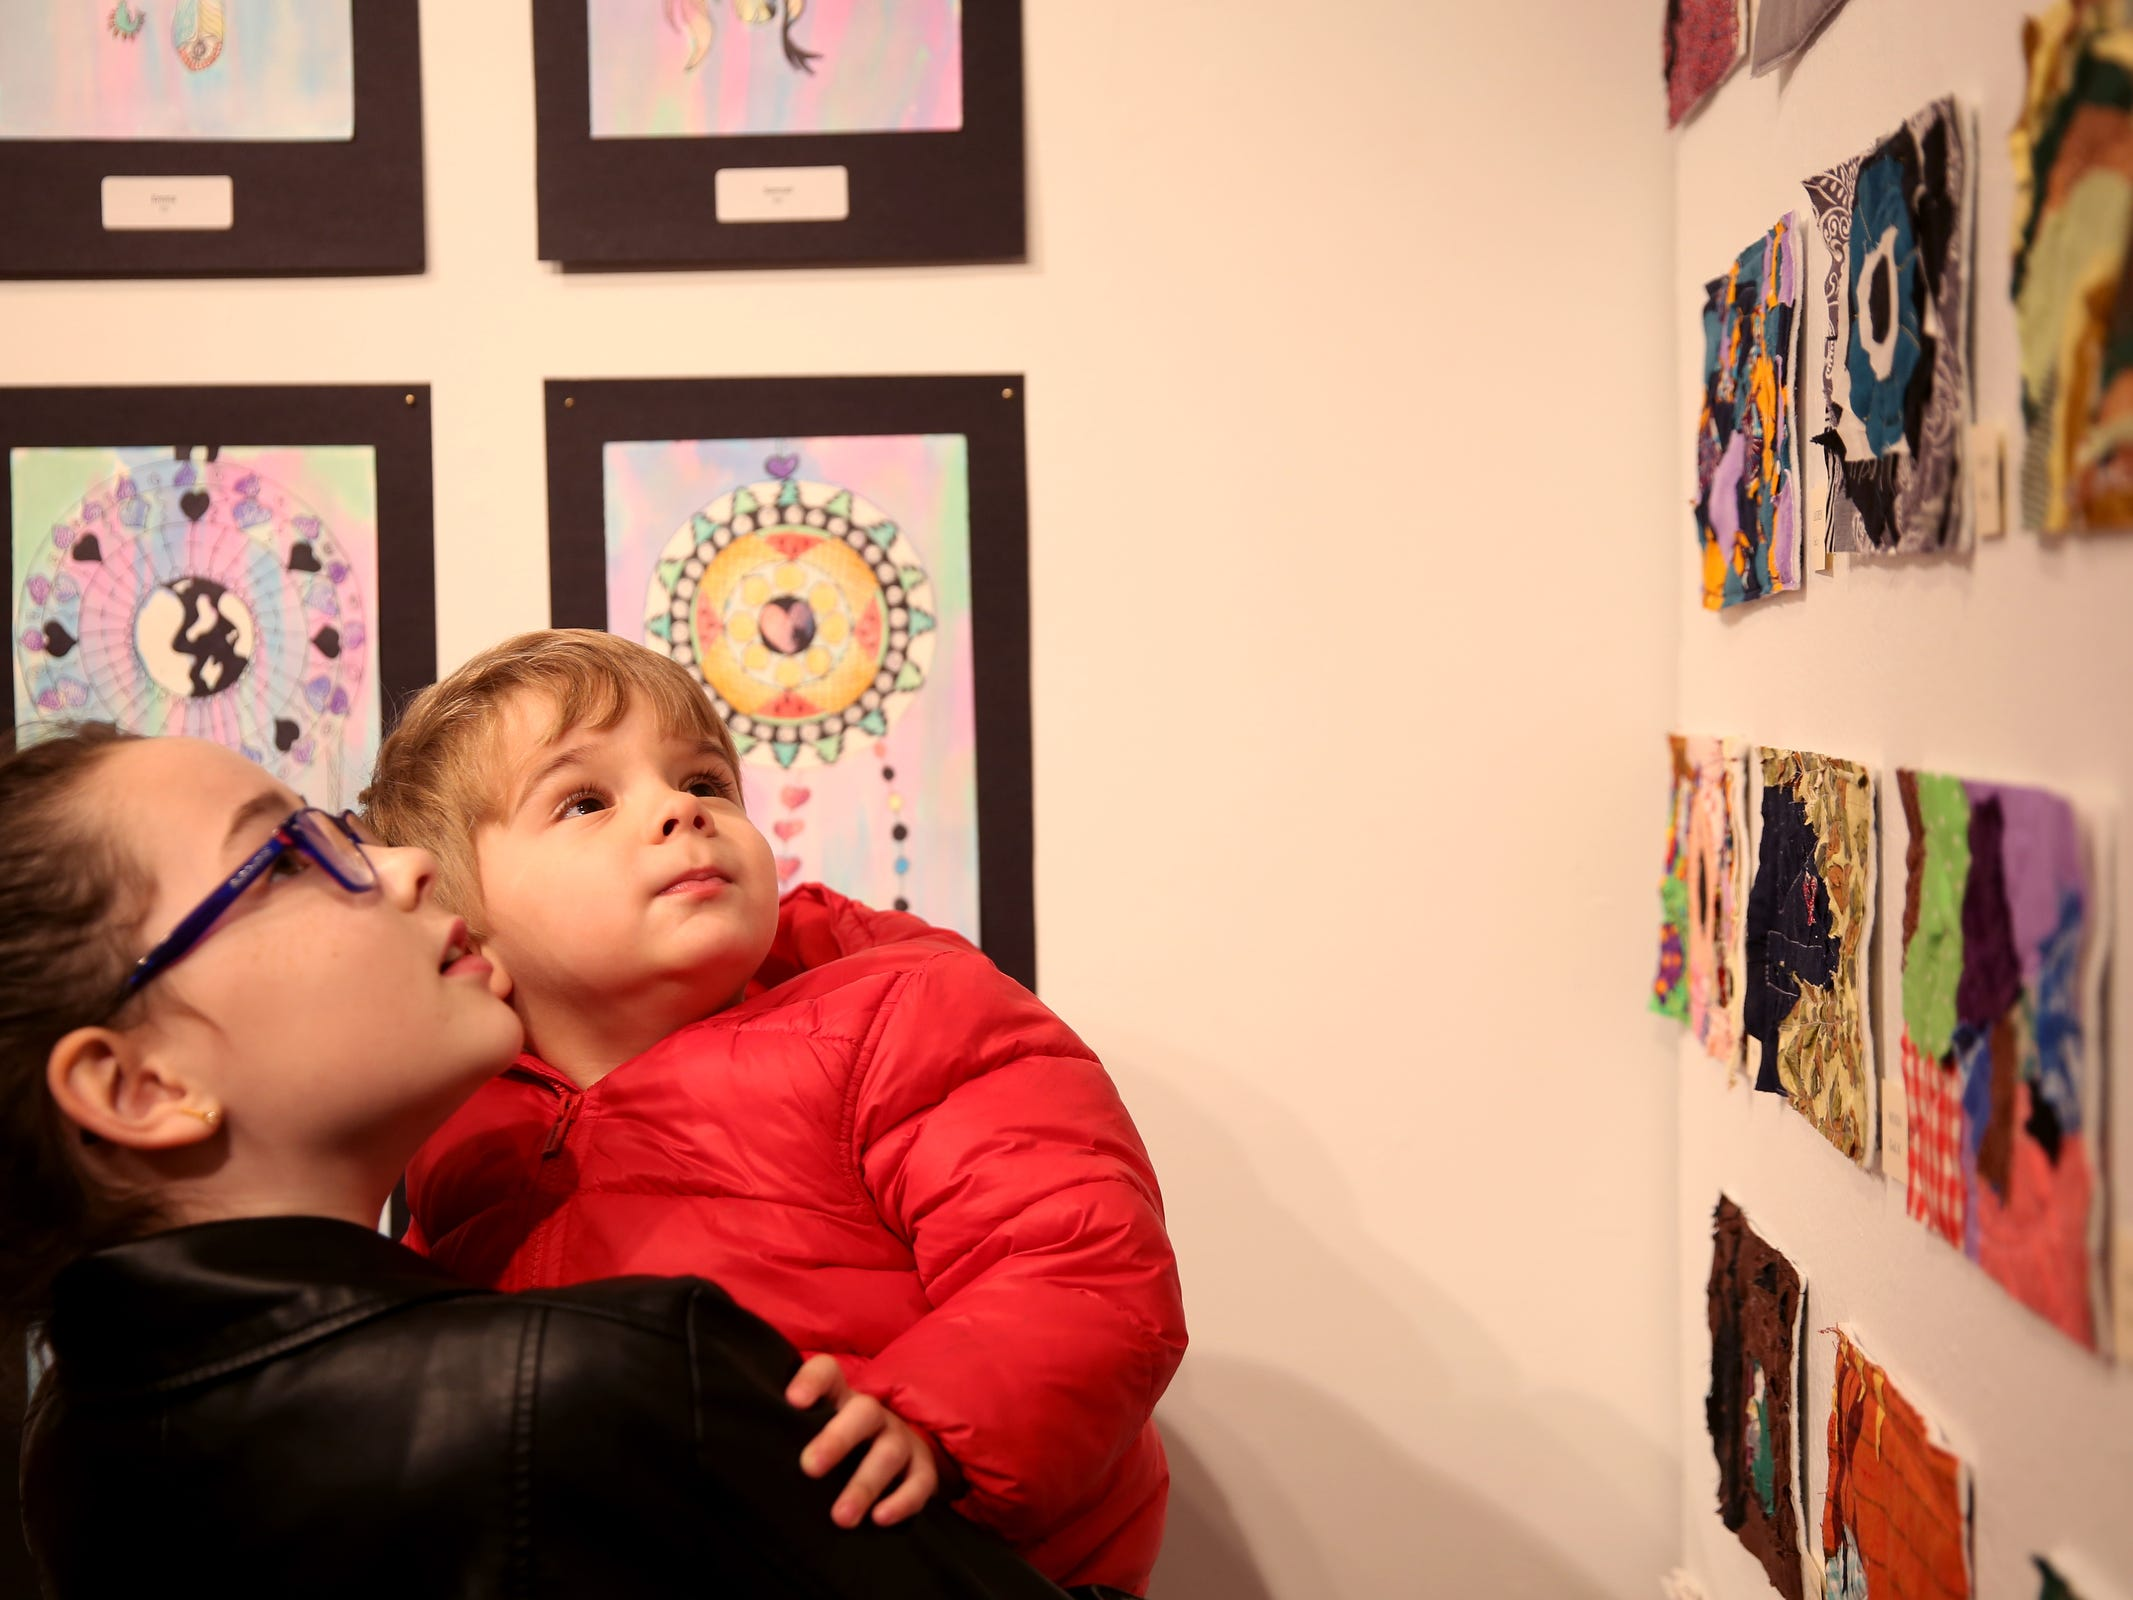 Lauren Burwash, a Zena Springs Farm School fourth-grader, holds Henry Sparks, 2, while looking at art during the awards reception for the 10th annual Young Artists' Showcase at the Bush Barn Art Center in Salem on March 9, 2019. The exhibit features artwork by more than 400 students in Marion, Polk and Yamhill counties and runs through April 20.